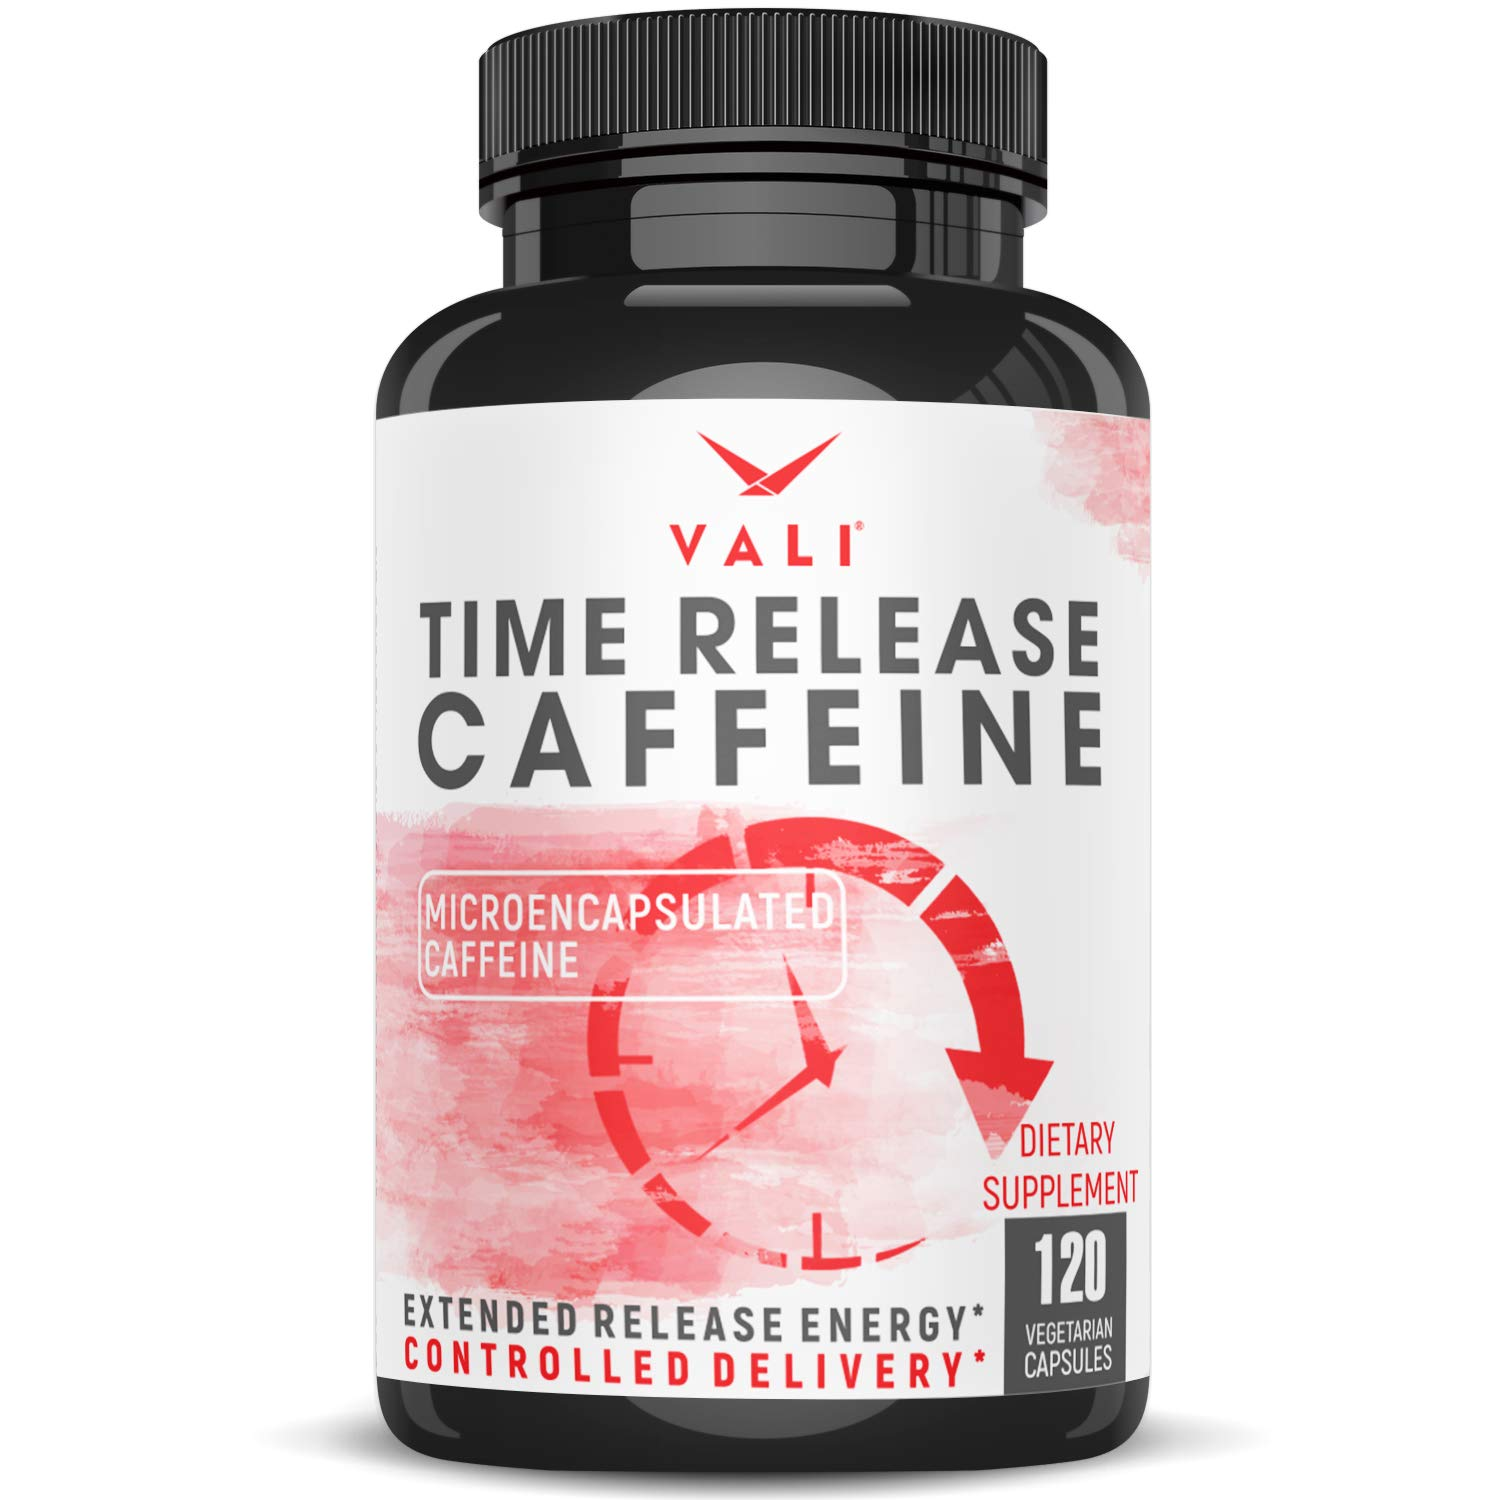 Time Release 100mg Caffeine Pills - 120 Veggie Capsules Microencapsulated for Extended Energy. No Crash Controlled Delivery Brain Booster Supplement for Sustained Mental Performance, Focus & Clarity by VALI